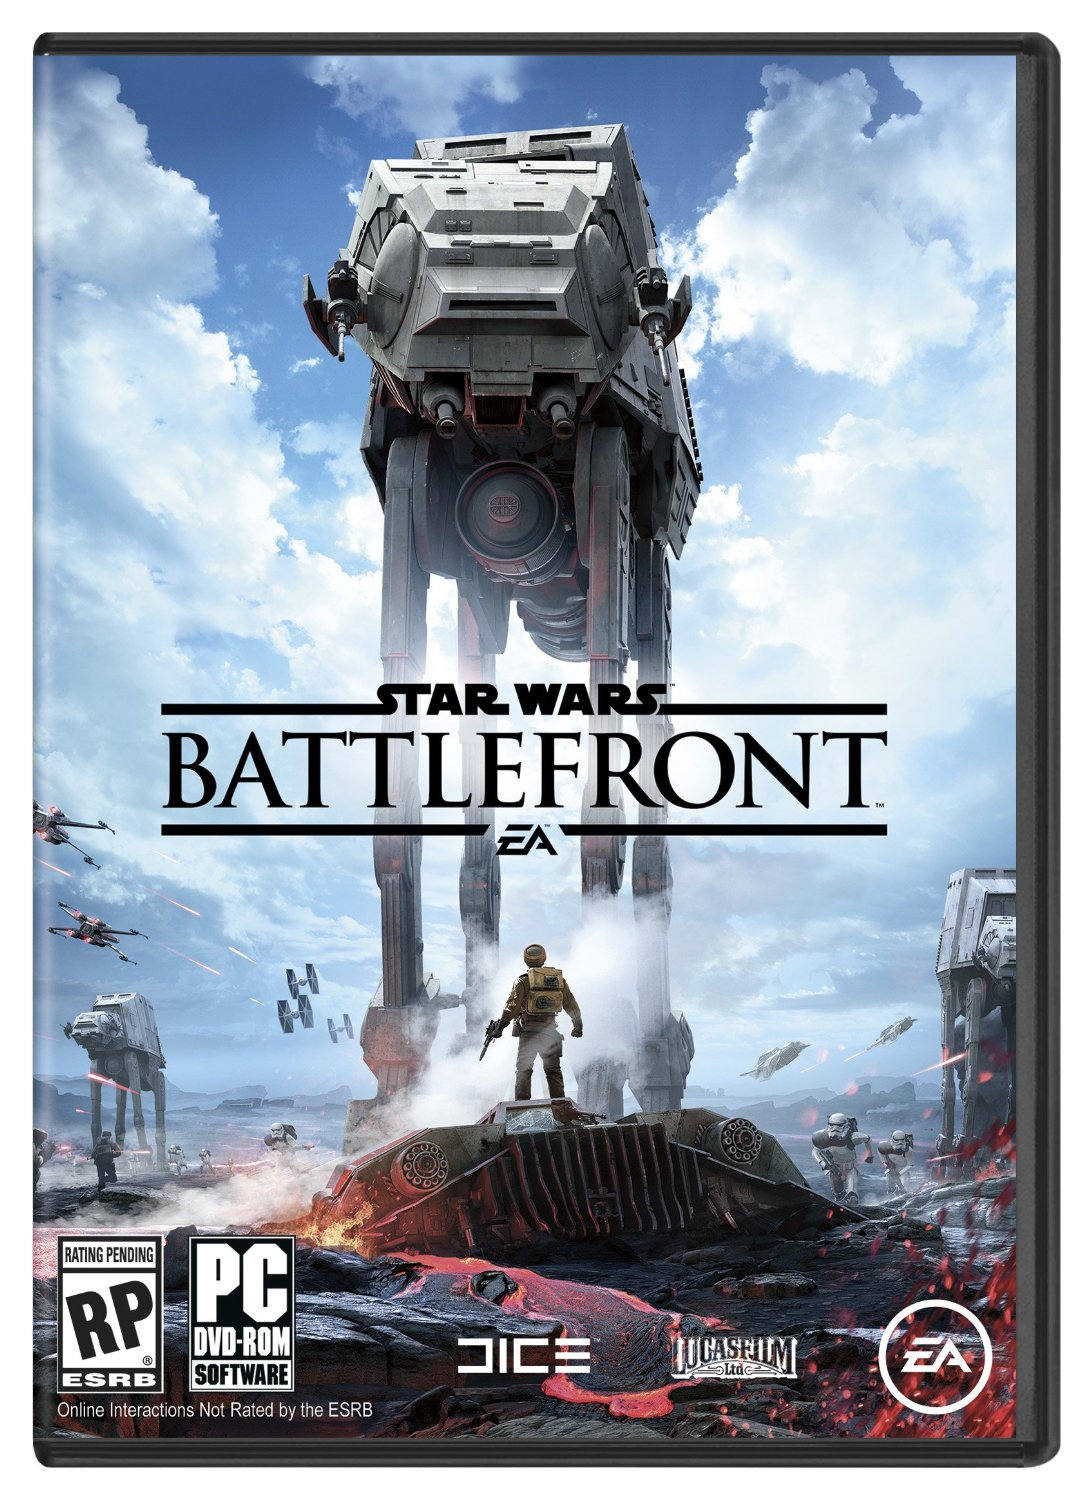 Star Wars Battlefront - Troubleshoot issues in STAR WARS Battlefront